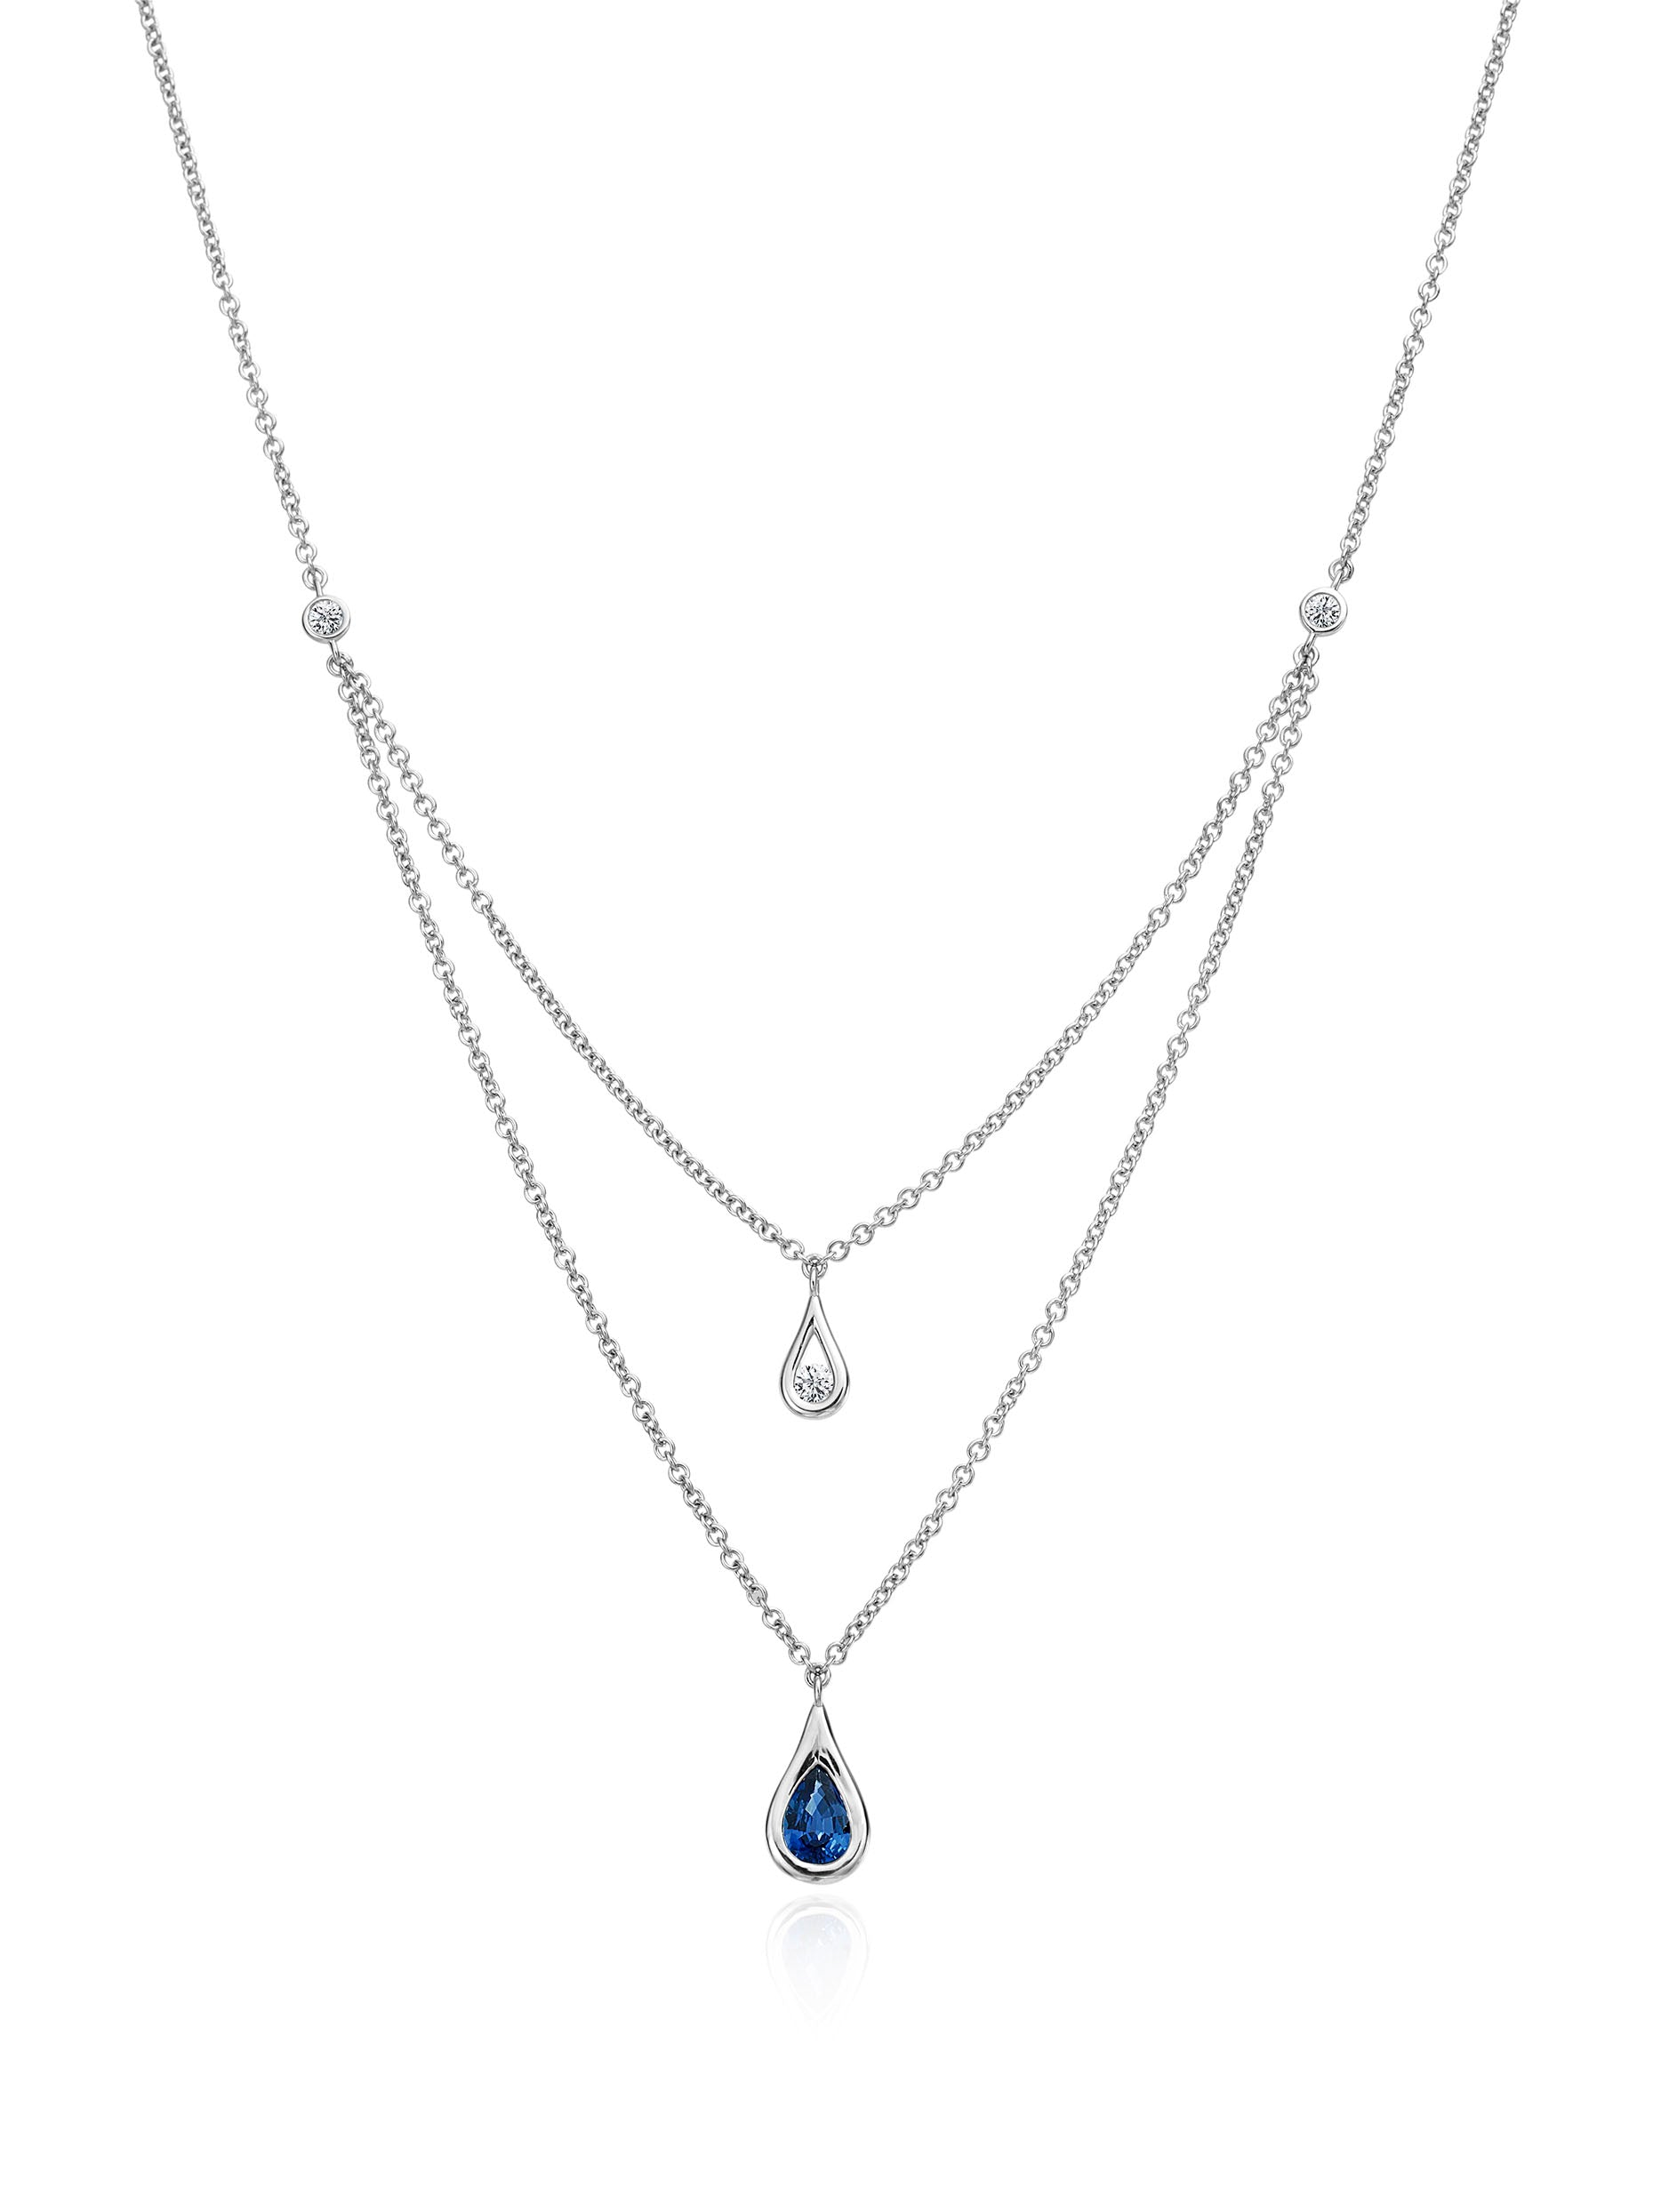 Double Layer Diamond and Sapphire Necklace